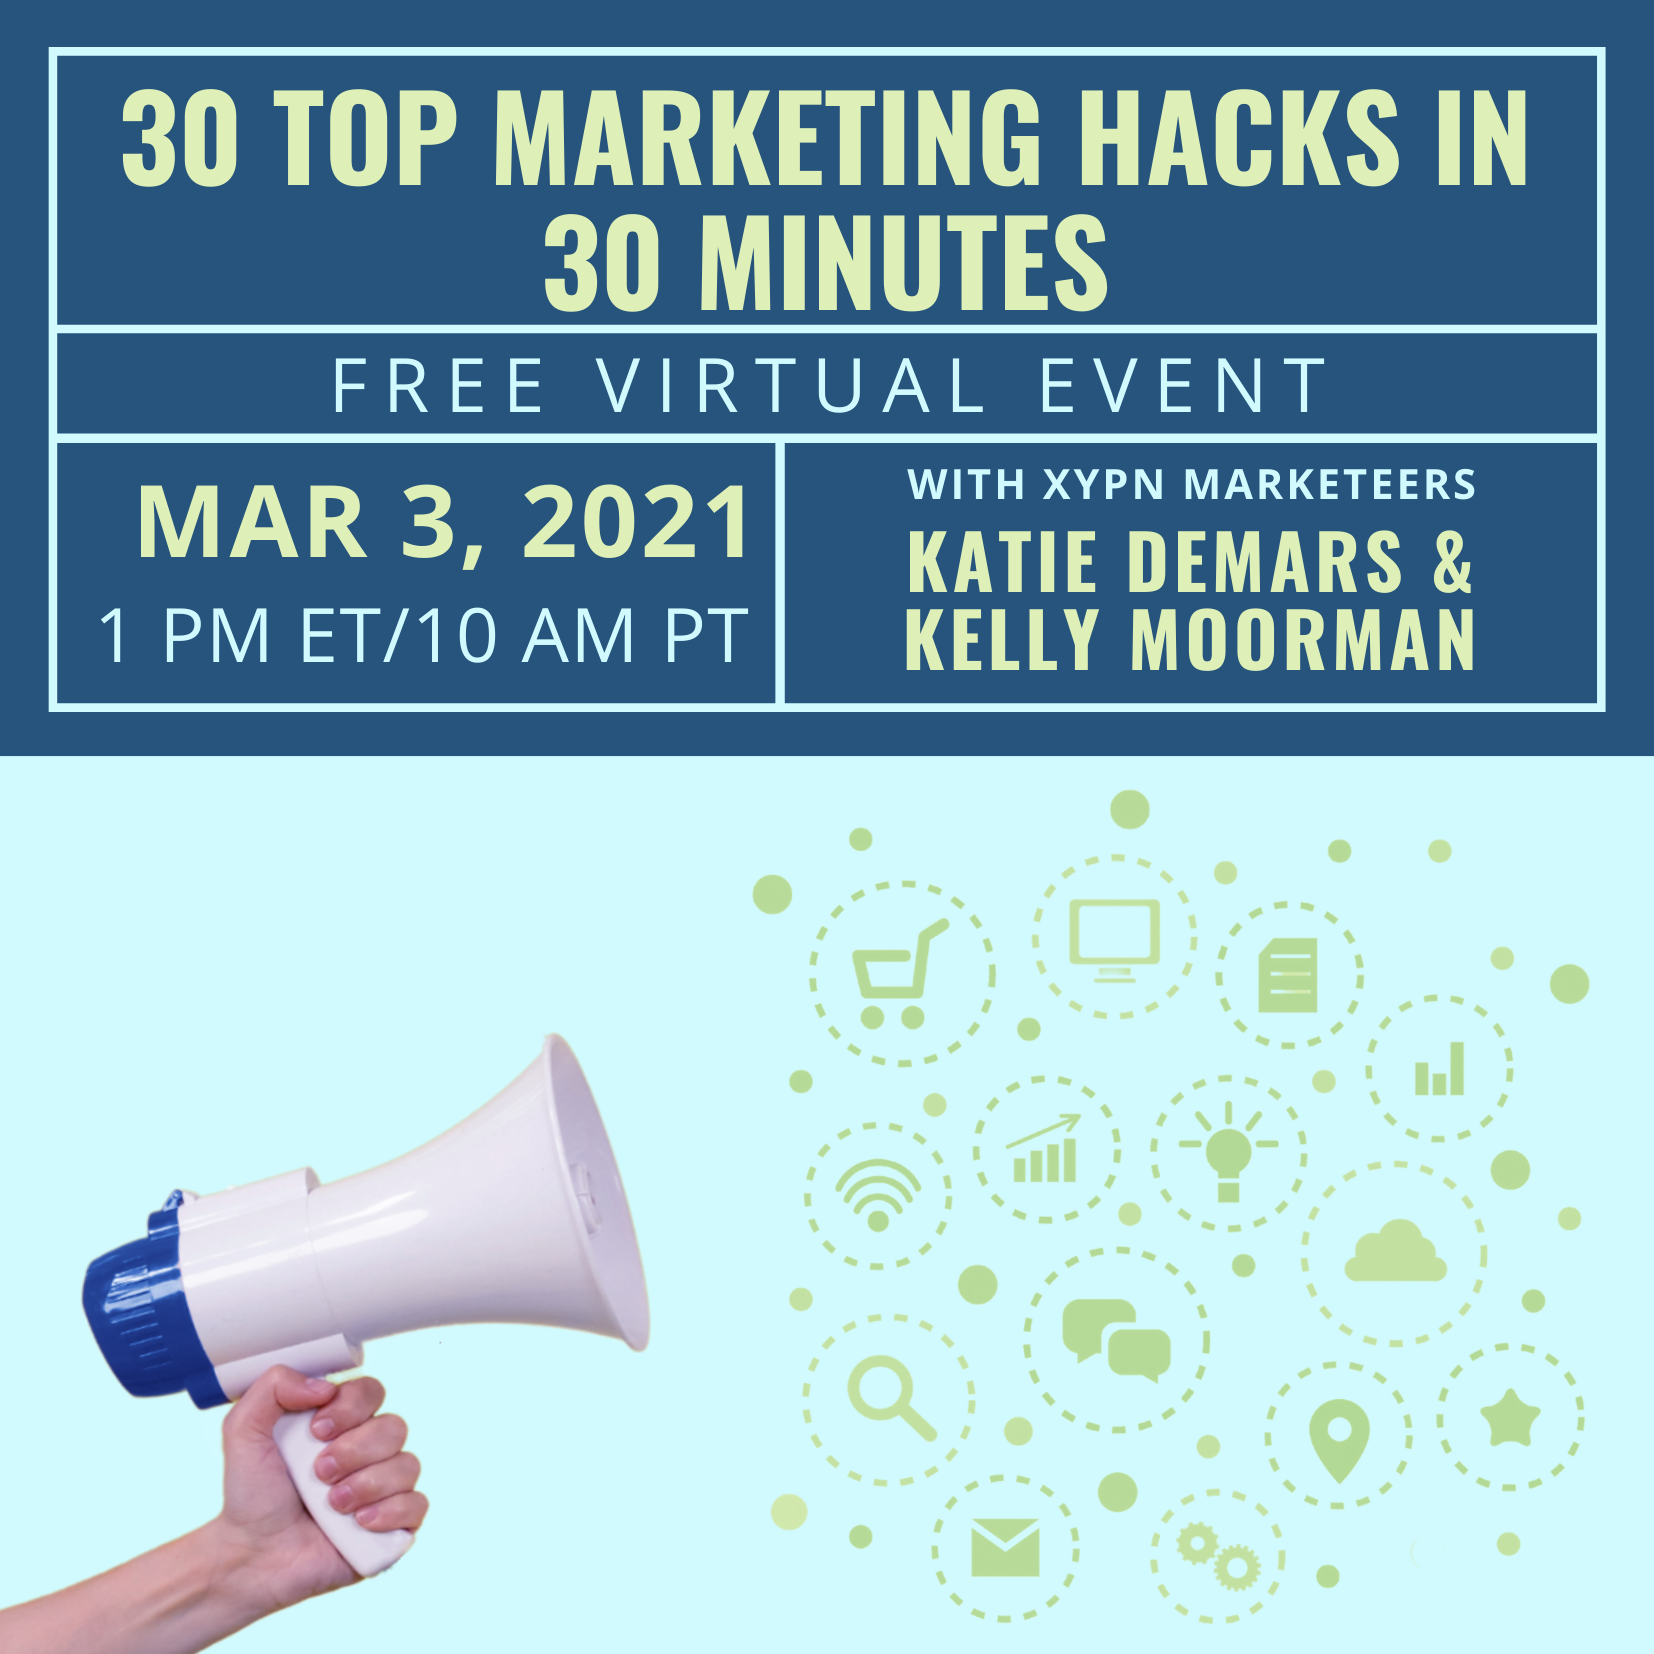 Free Virtual Event: 30 Top Marketing Hacks in 30 Minutes